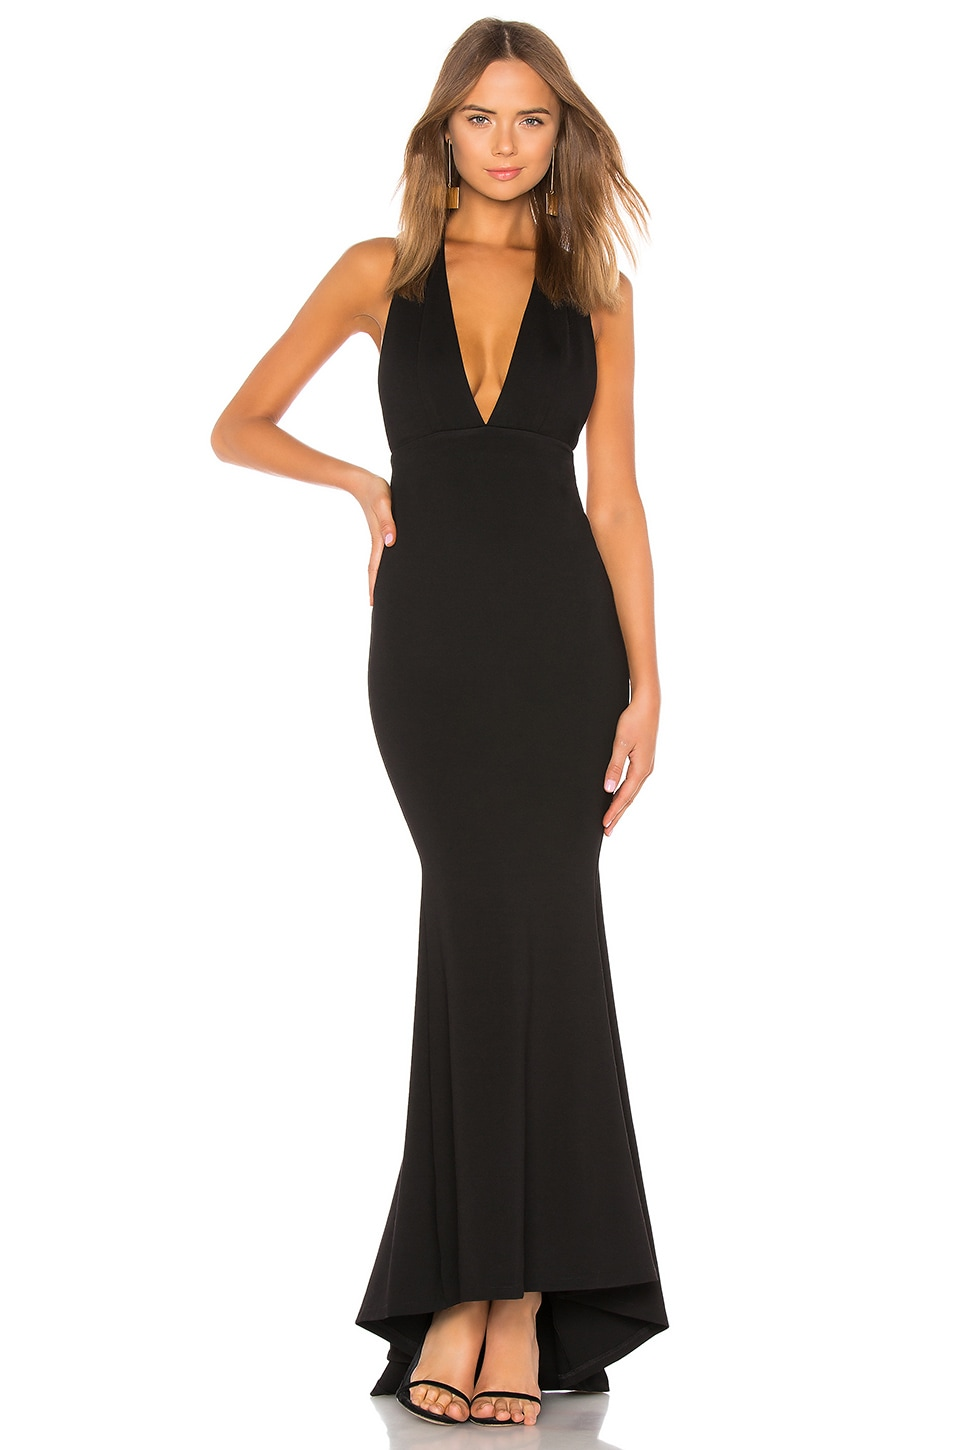 NBD Jenny From The Block Gown in Black